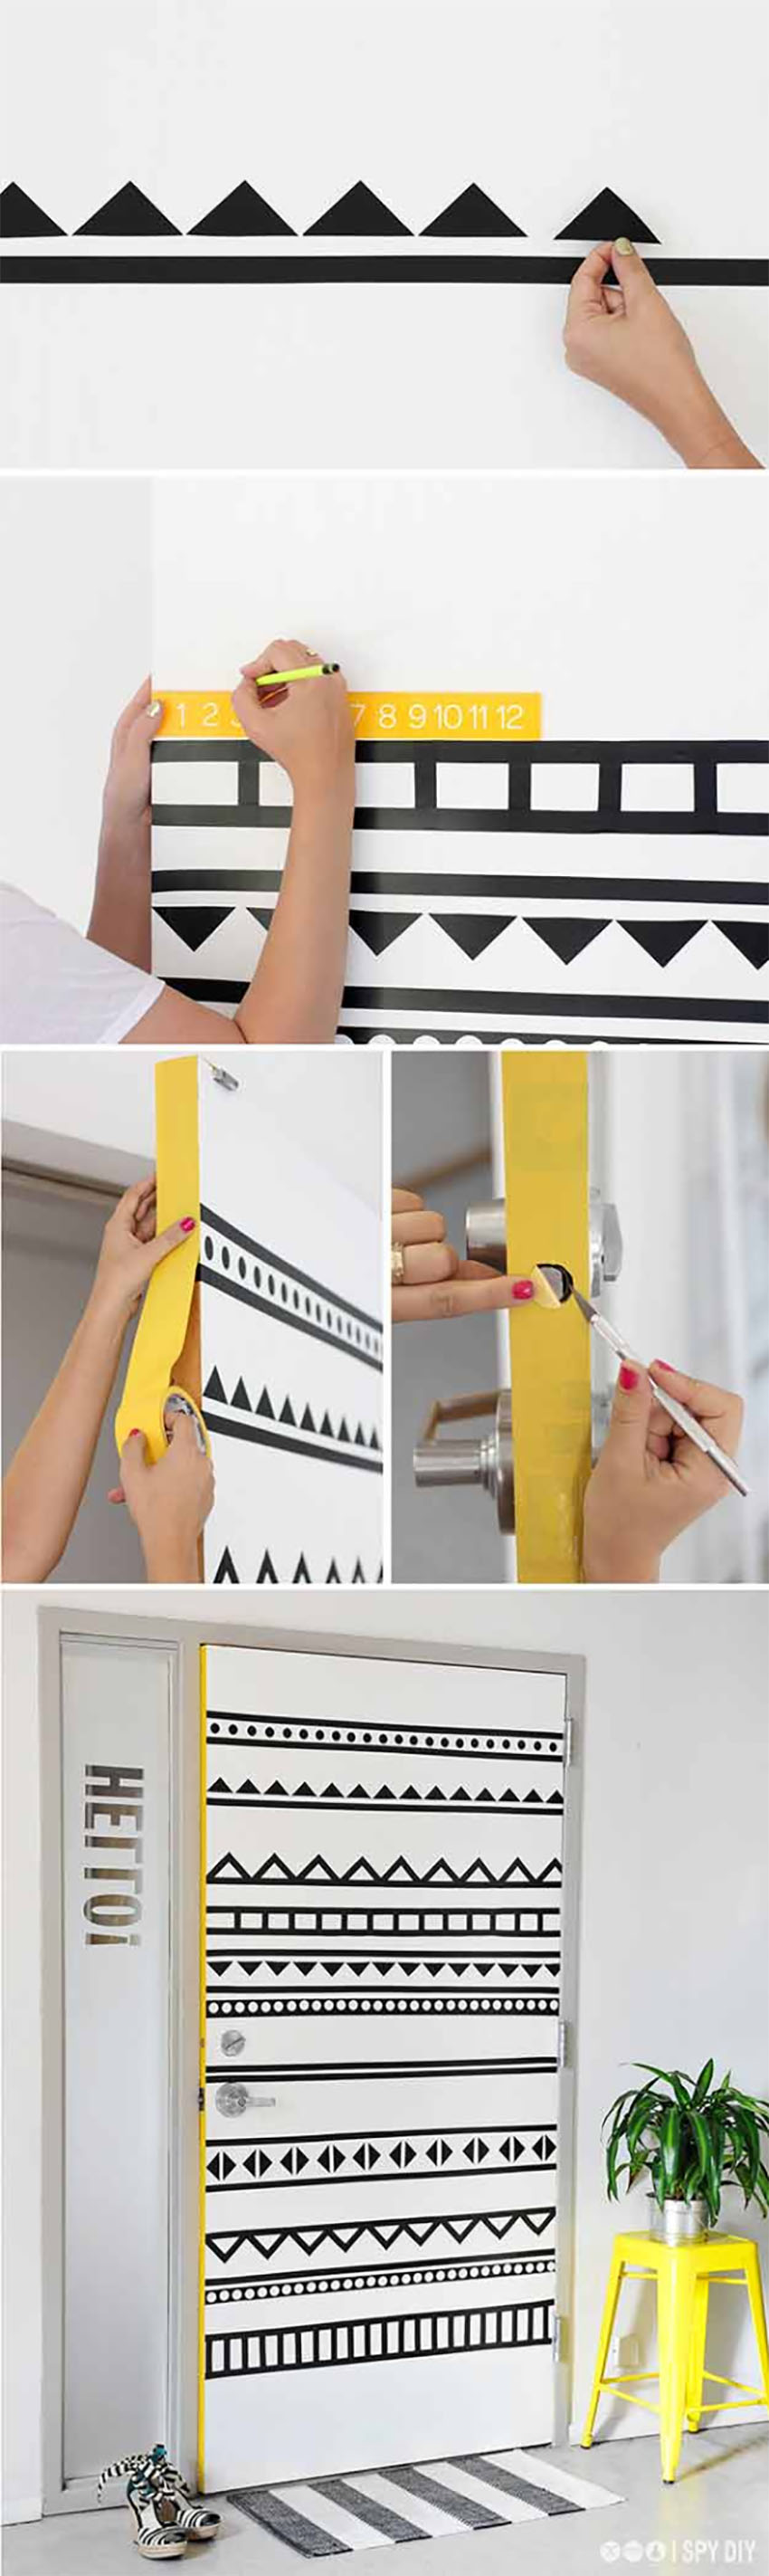 Washi Tape is an easy way to redecorate!